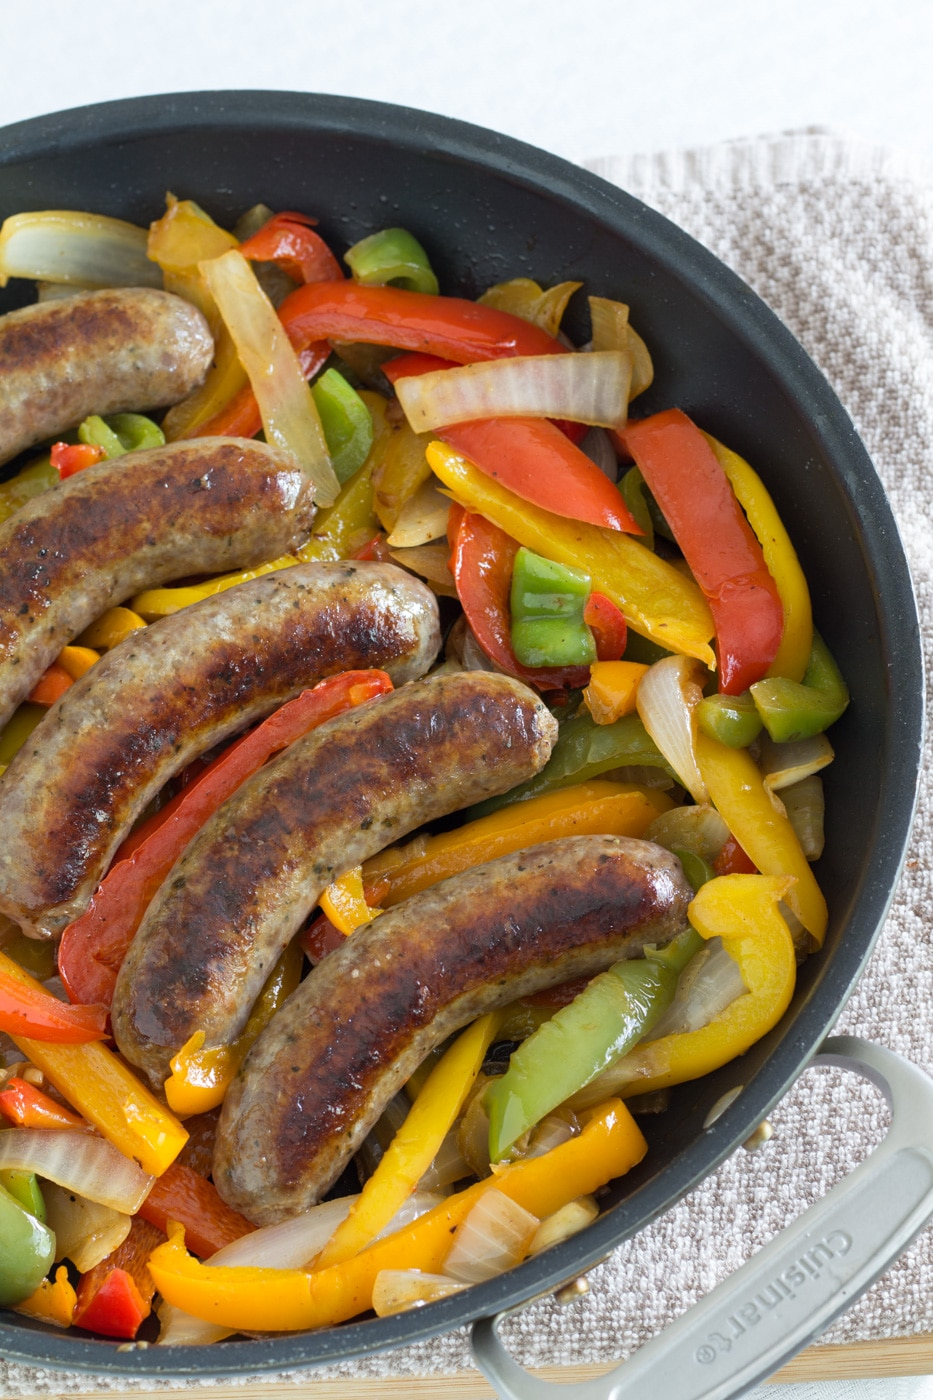 Italian Sausage links with peppers and onions in a black skillet